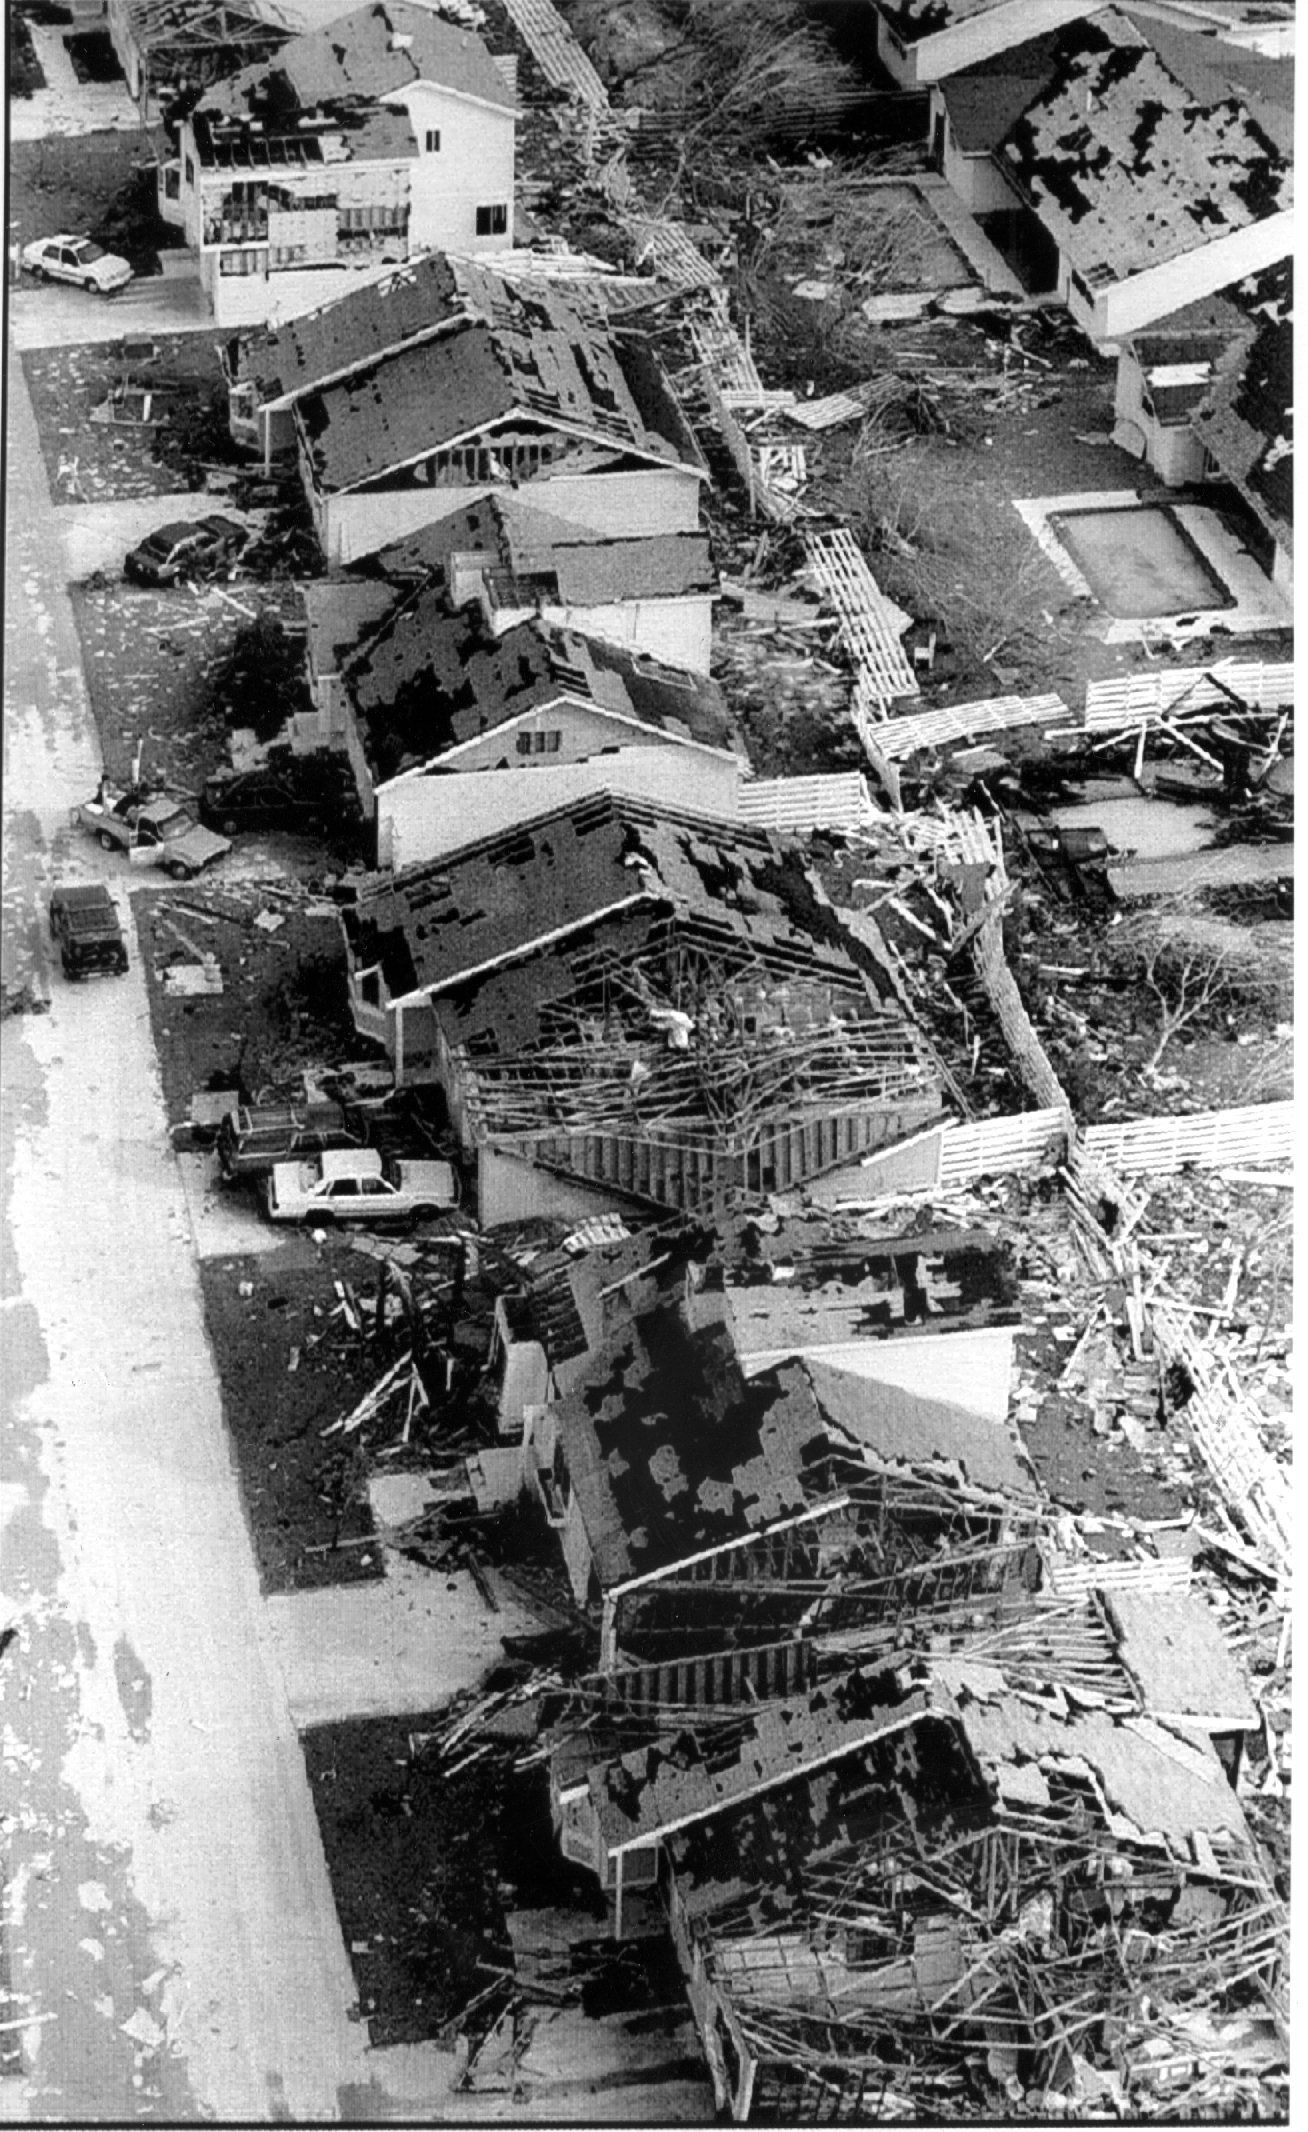 The Country Walk neighborhood is left in ruins by Hurricane Andrew on Sept. 1, 1992.